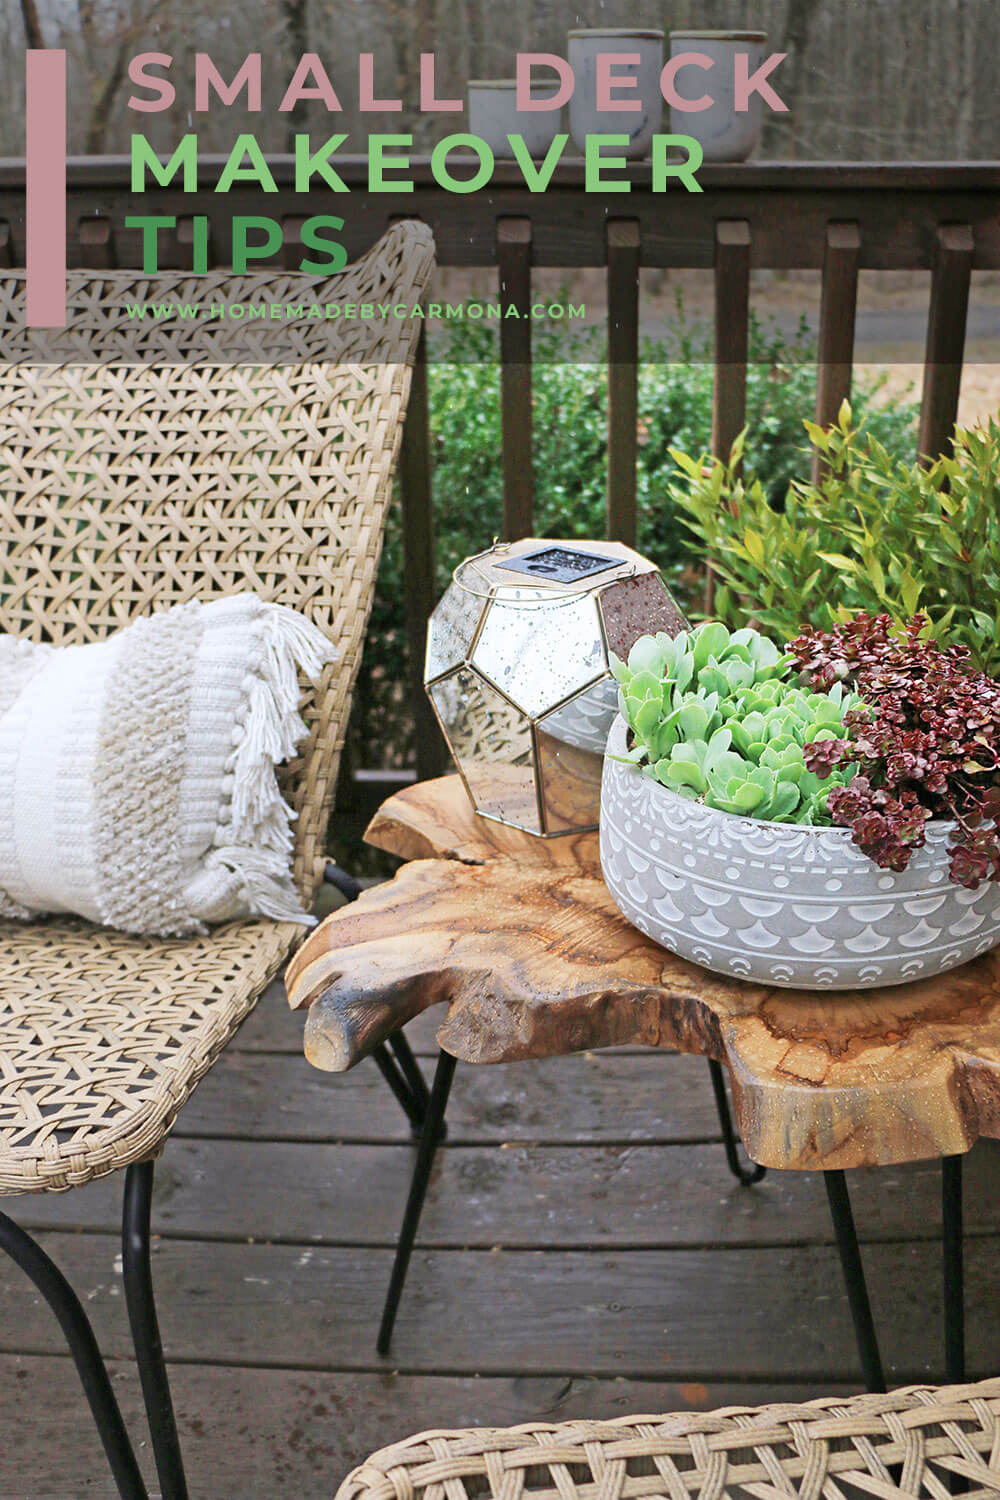 Small-Deck-Makeover-Tips